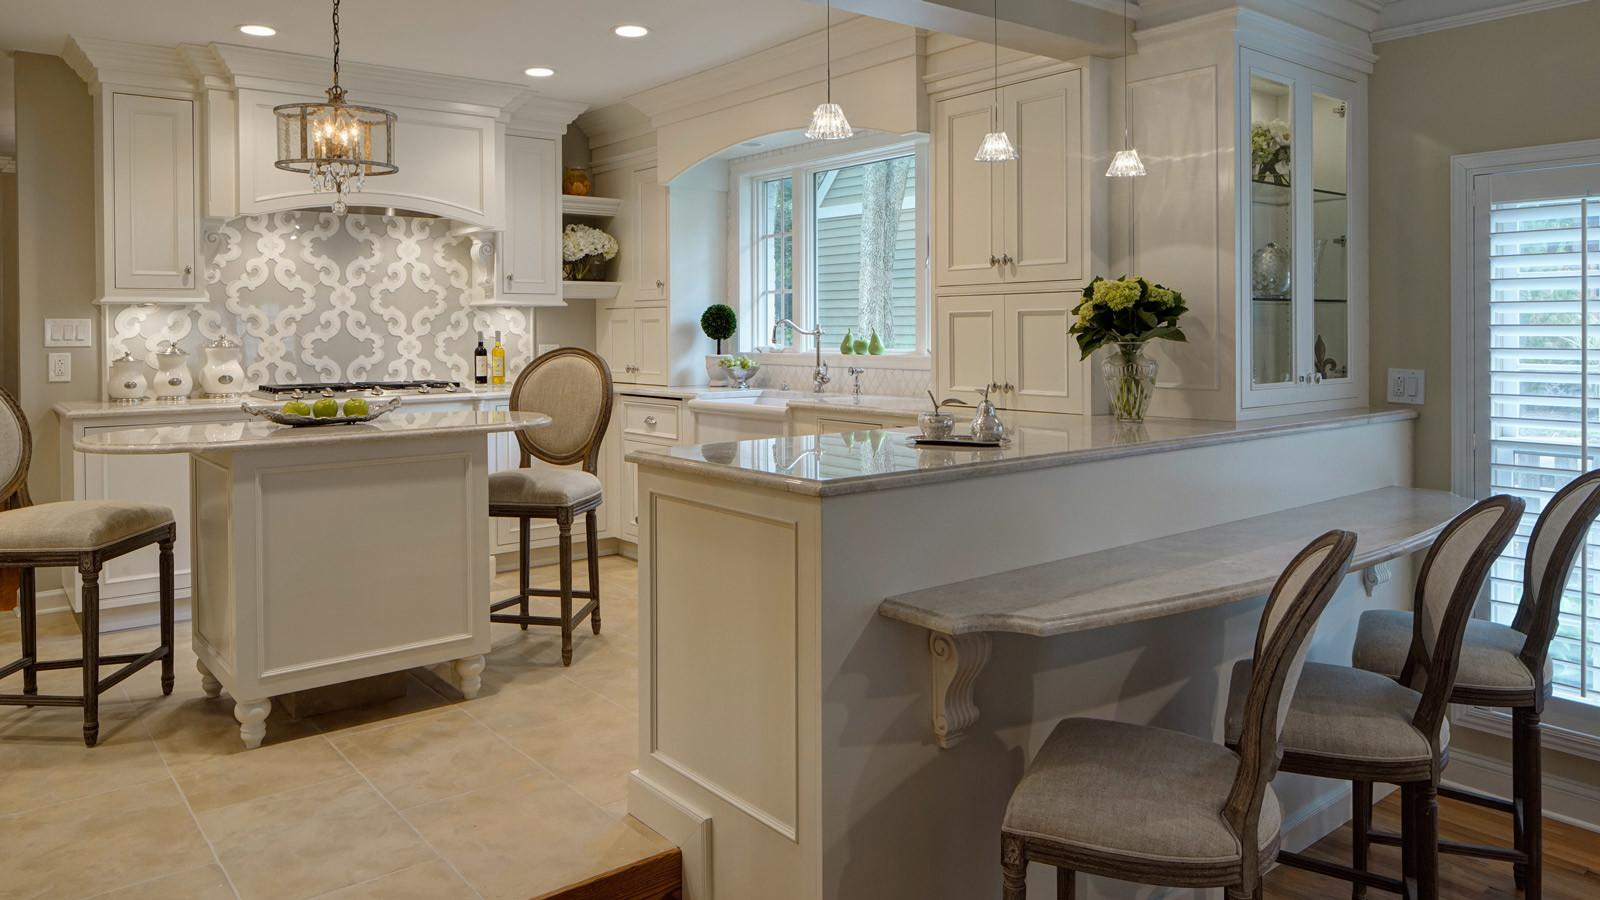 Luxury Meets Character Timeless Kitchen Design Drury